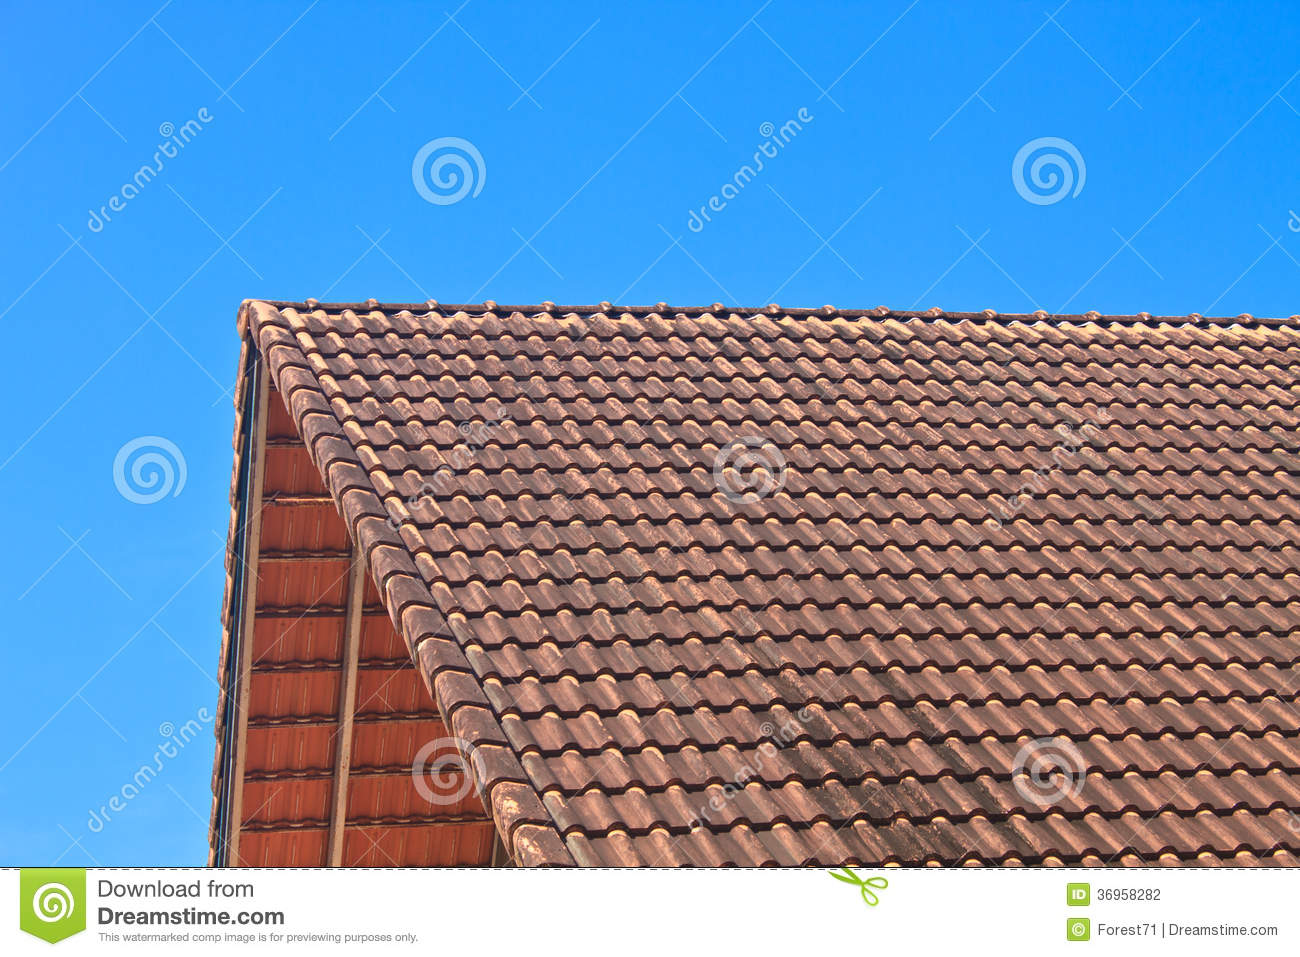 Roof tile pattern stock photography image 36958282 for Roof tile patterns